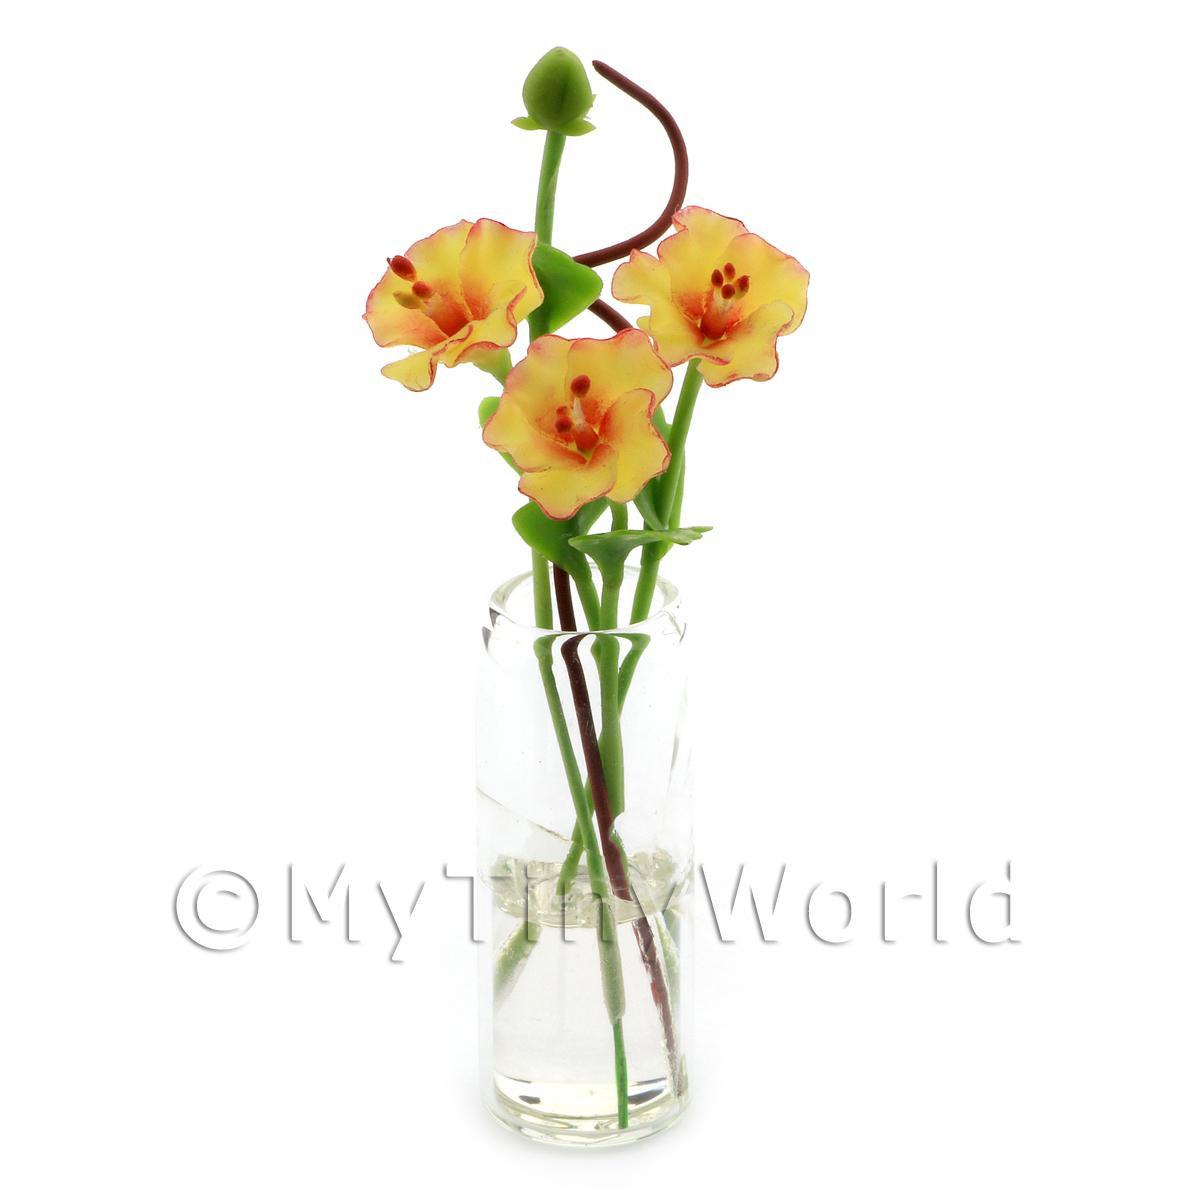 4 Miniature Yellow Cut Flowers in a Glass Vase